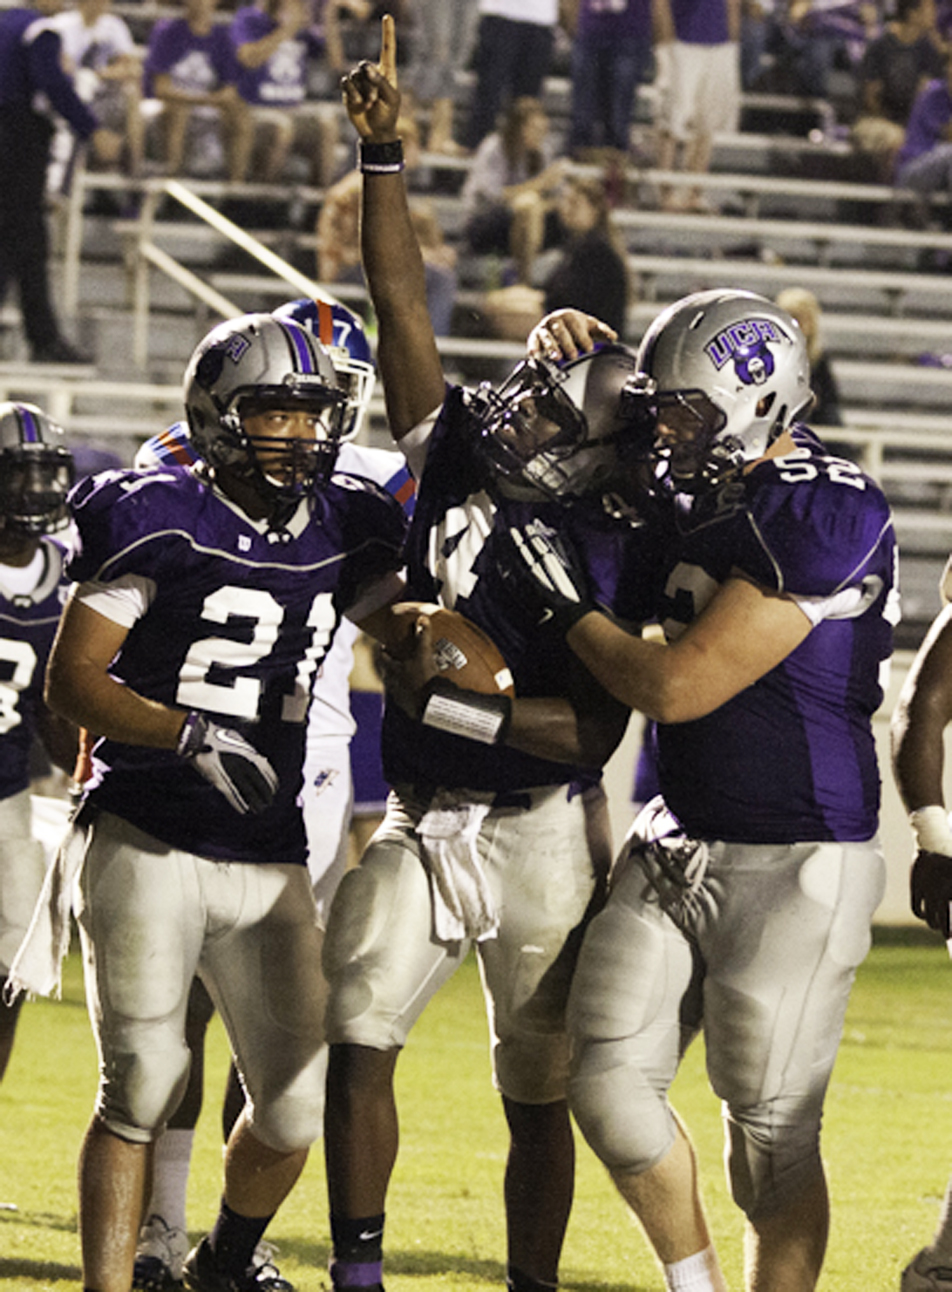 UCA's Anthony Smothers (4), Terence Bobo (21) and Nate Richards.